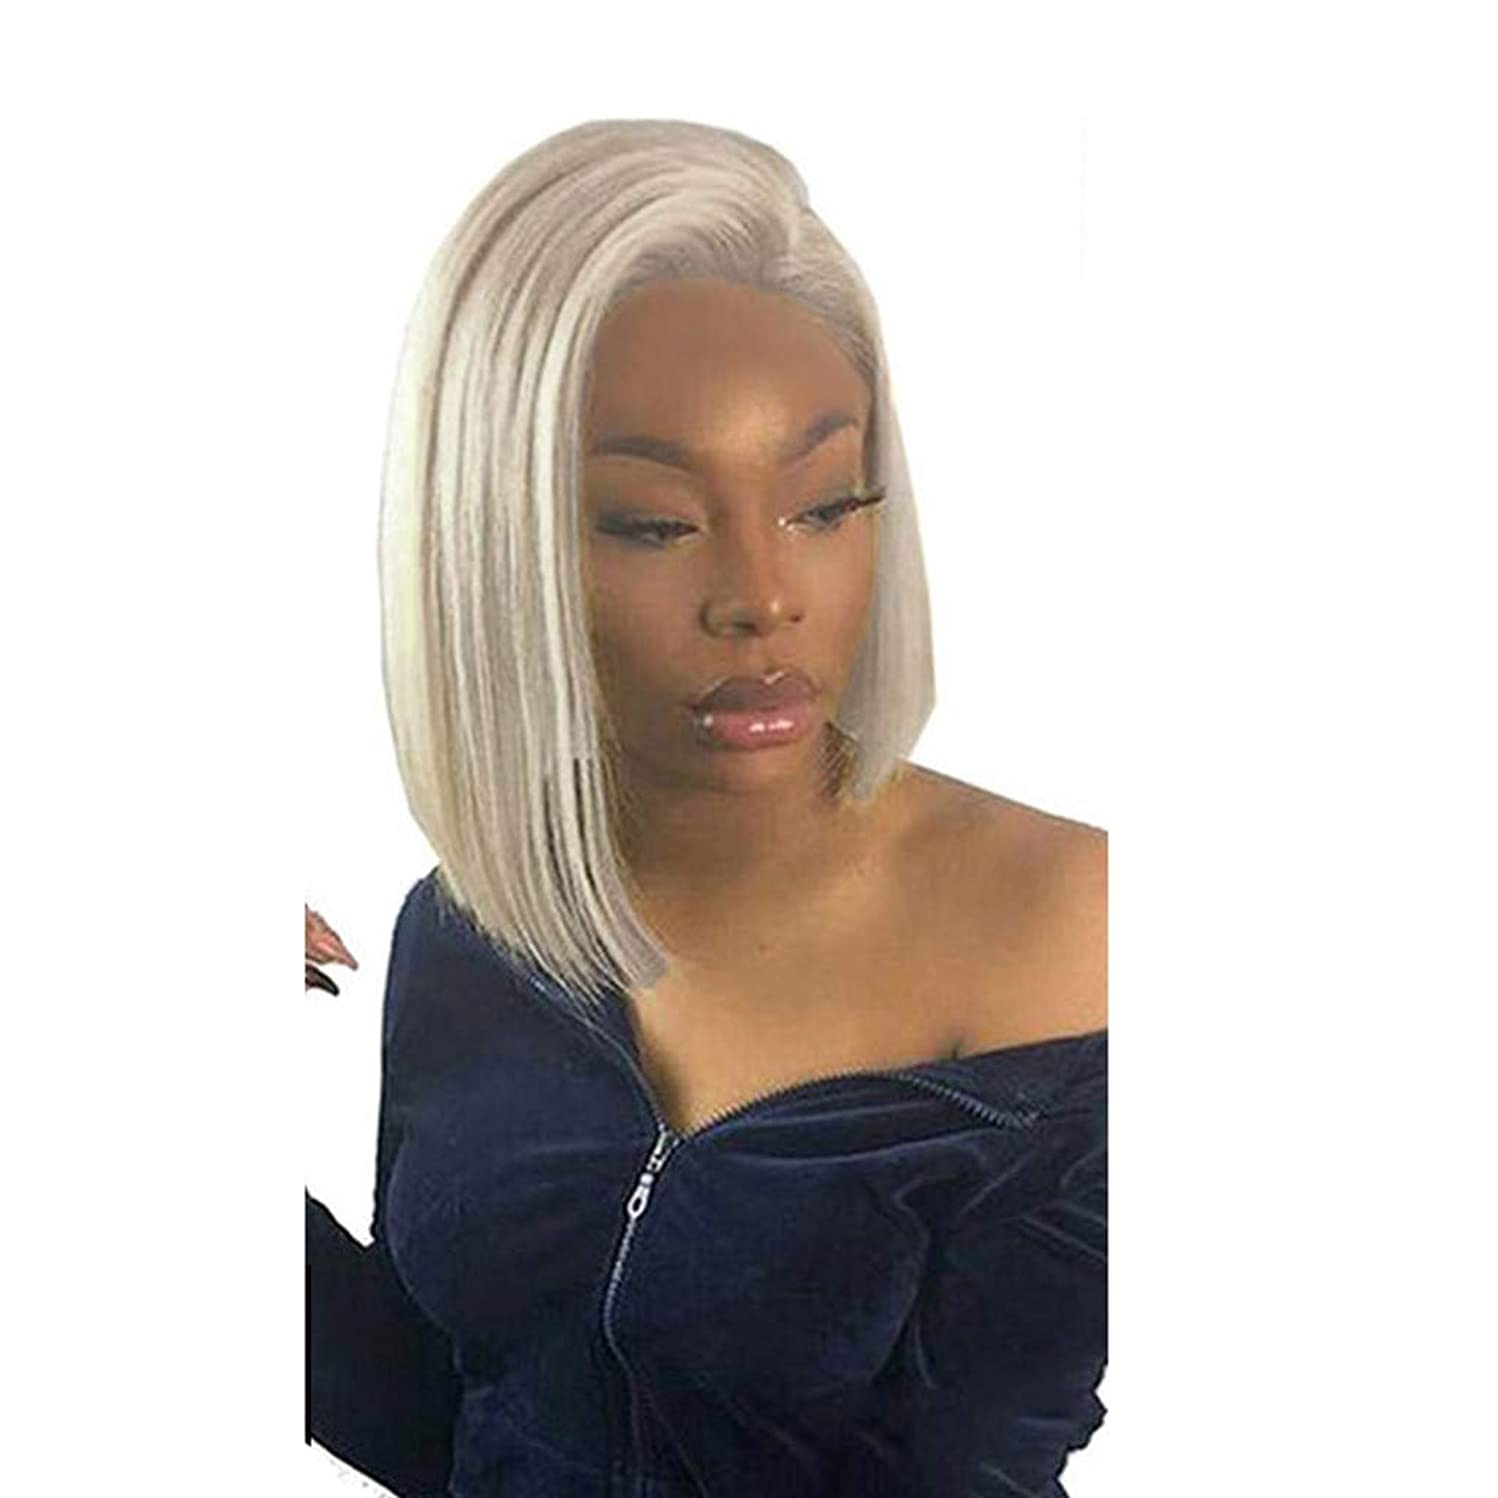 Dowager Blonde 13x6 Front Wig Blue Colored Remy Red Human Hair Full Ends Transparent Frontal Closure Swiss Lace Short Bob Wigs